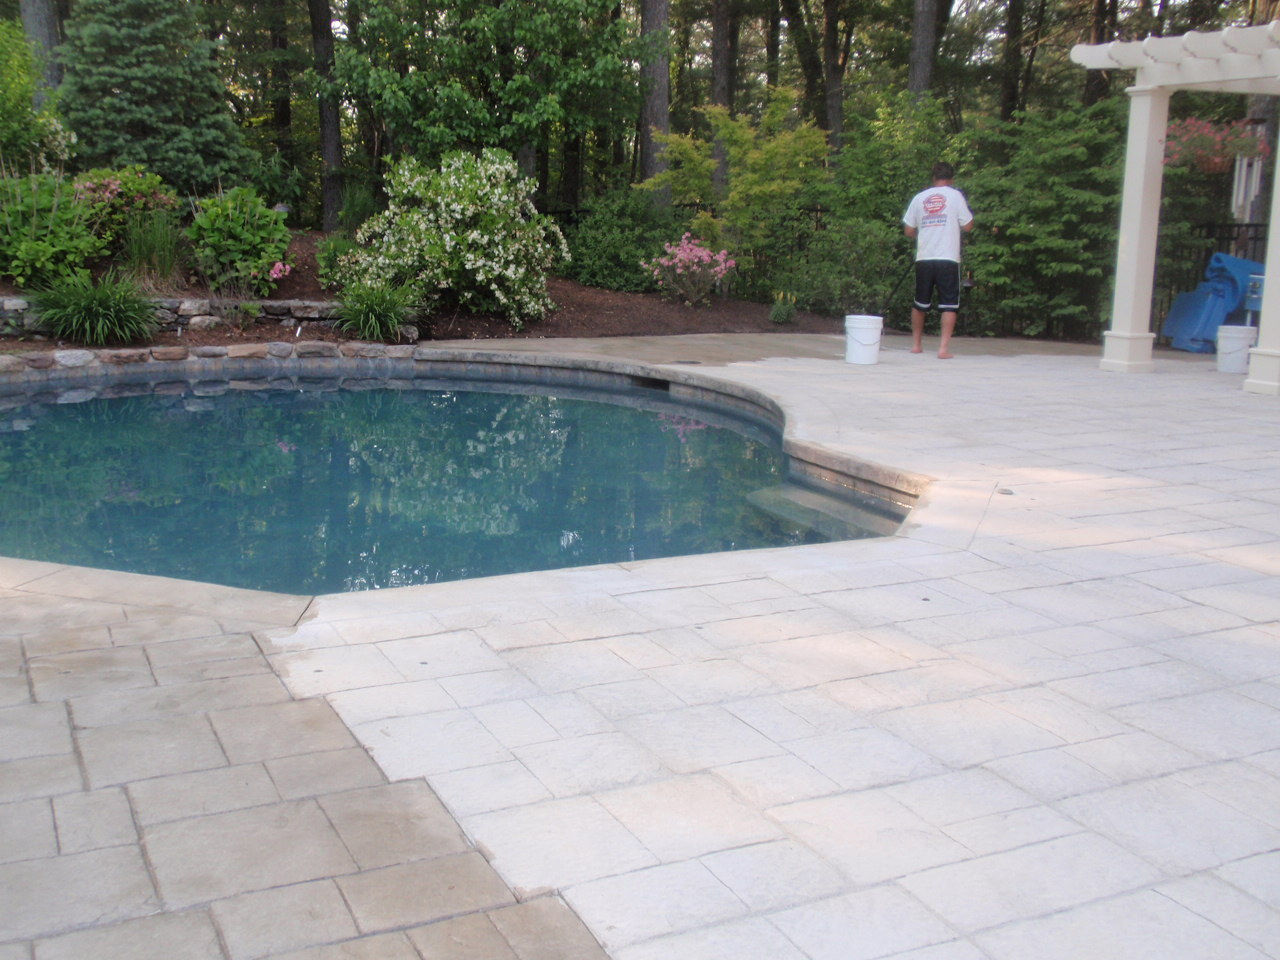 Sealing exposed aggregate pool deck -  Pool Patio Deck Stamped Concrete Sealing